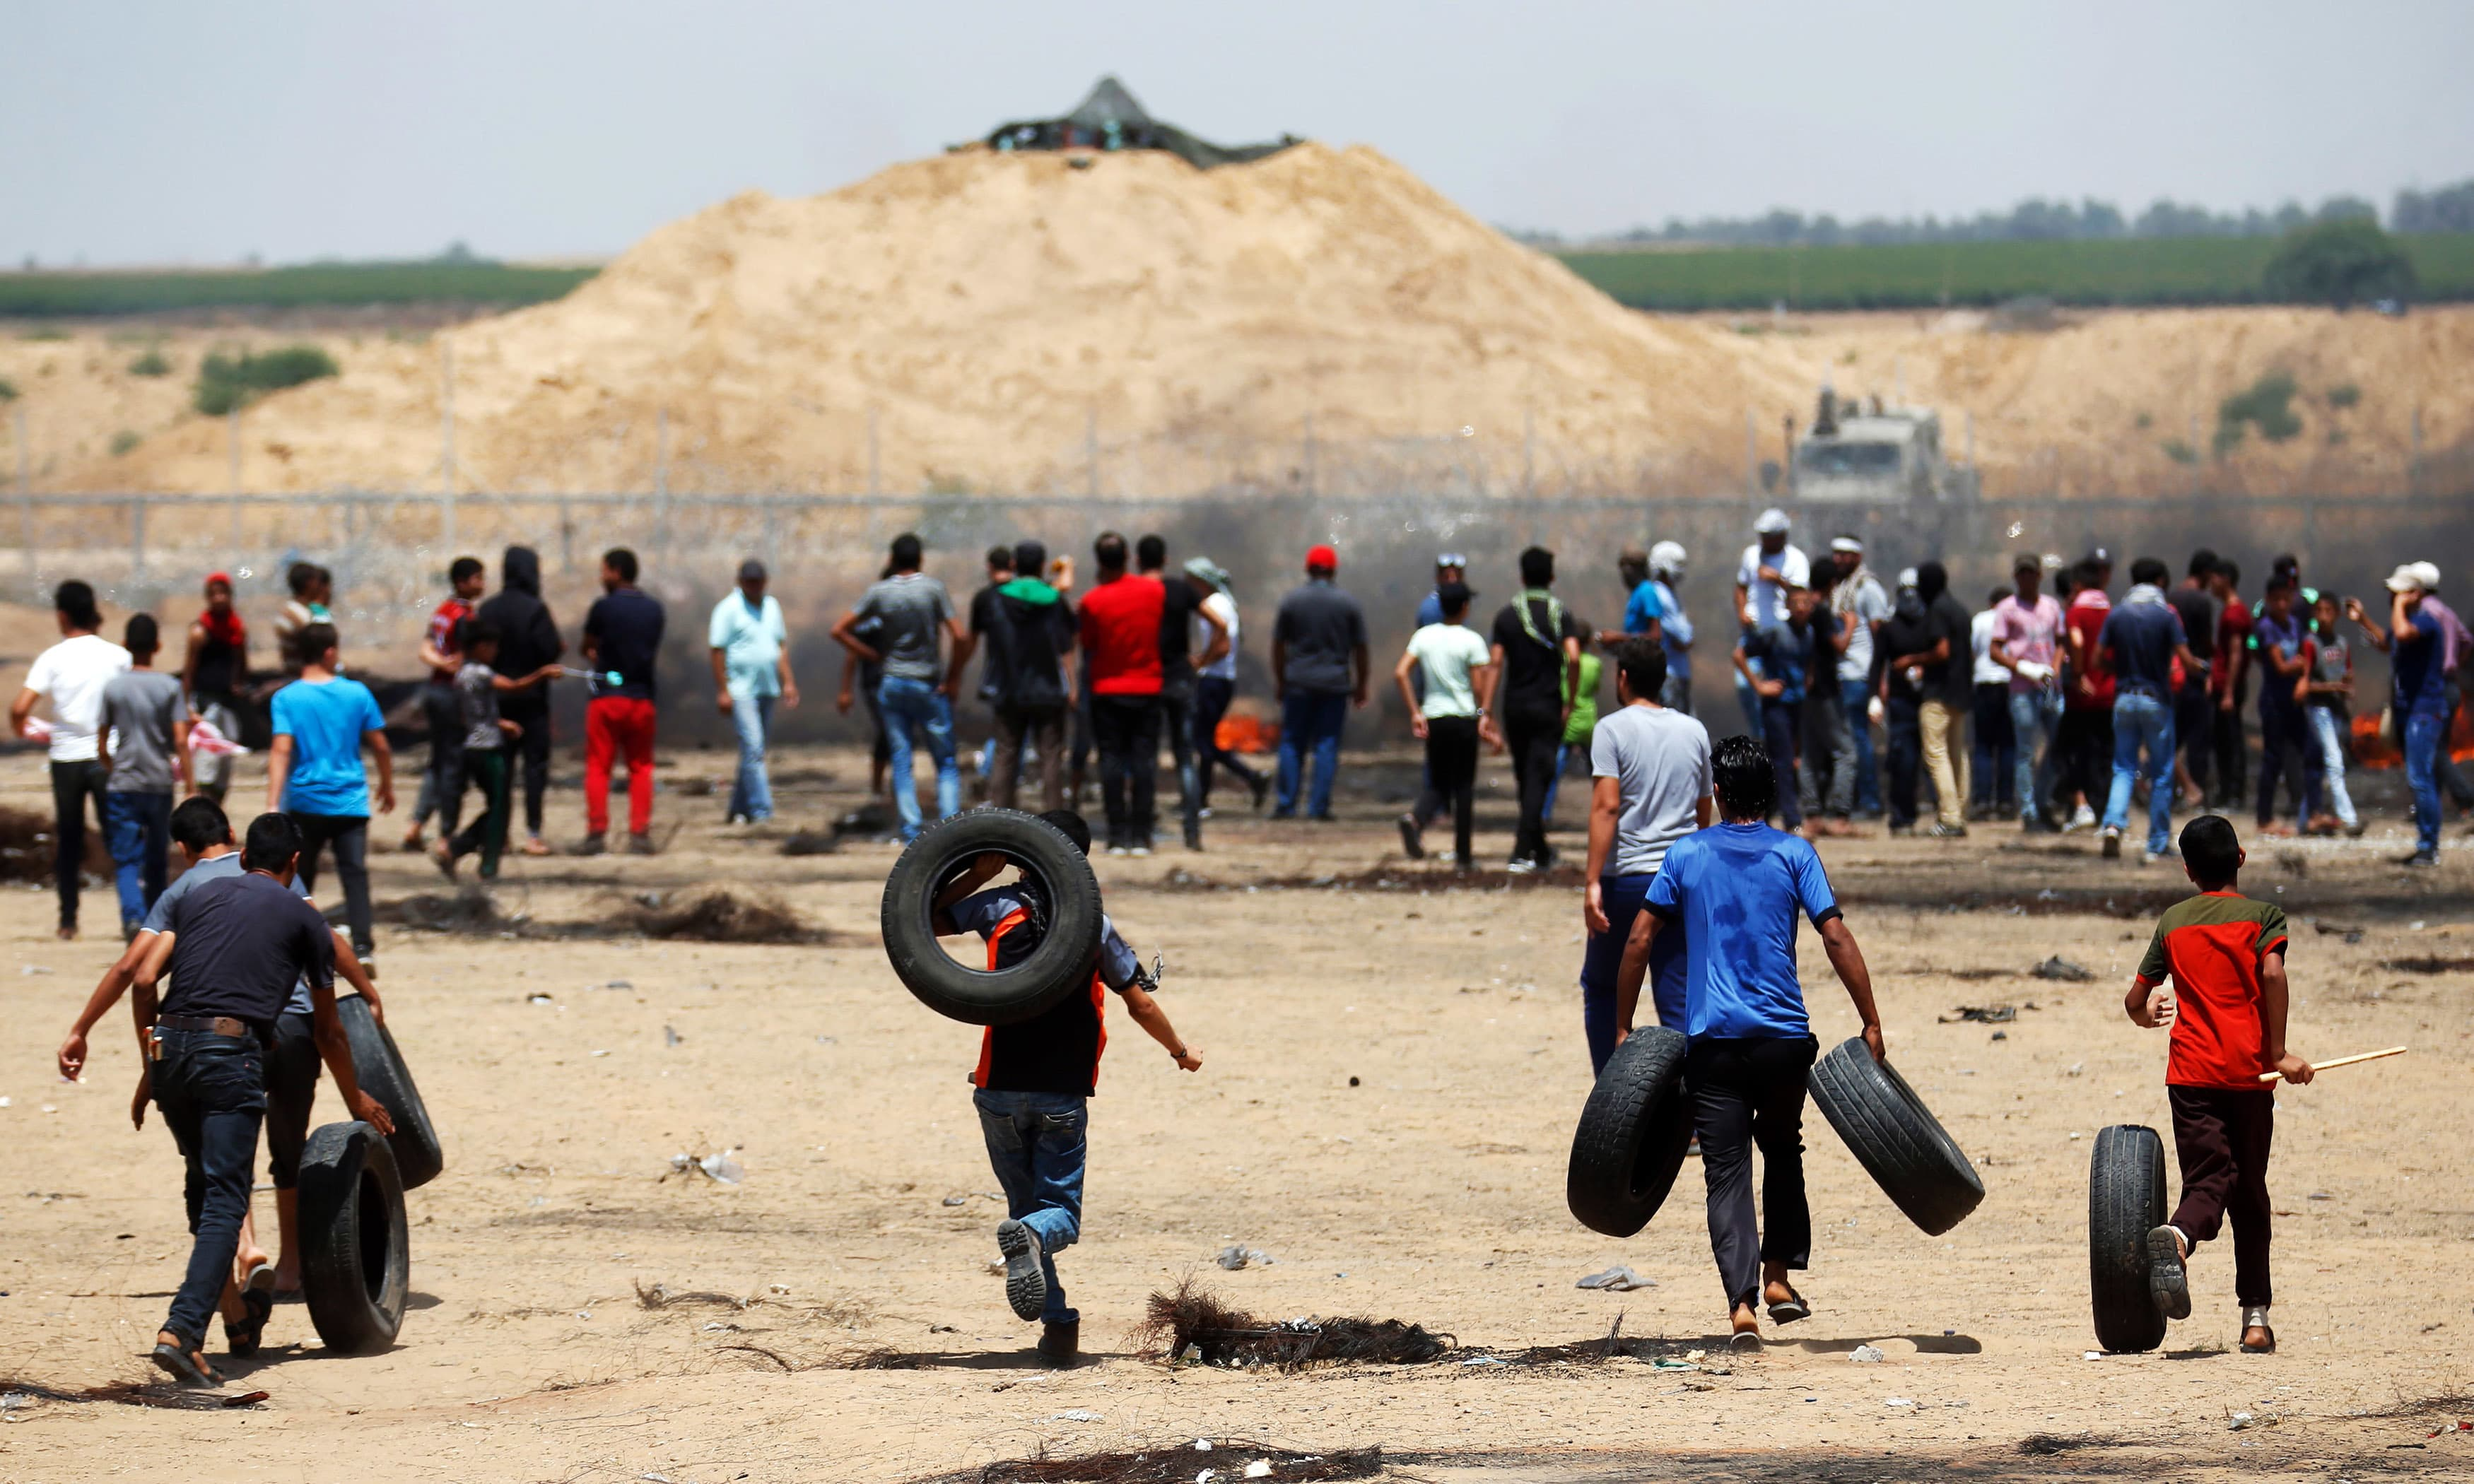 Youths carry tires on their shoulders as they head to join other protesters gathered along the border fence with Israel. —AFP